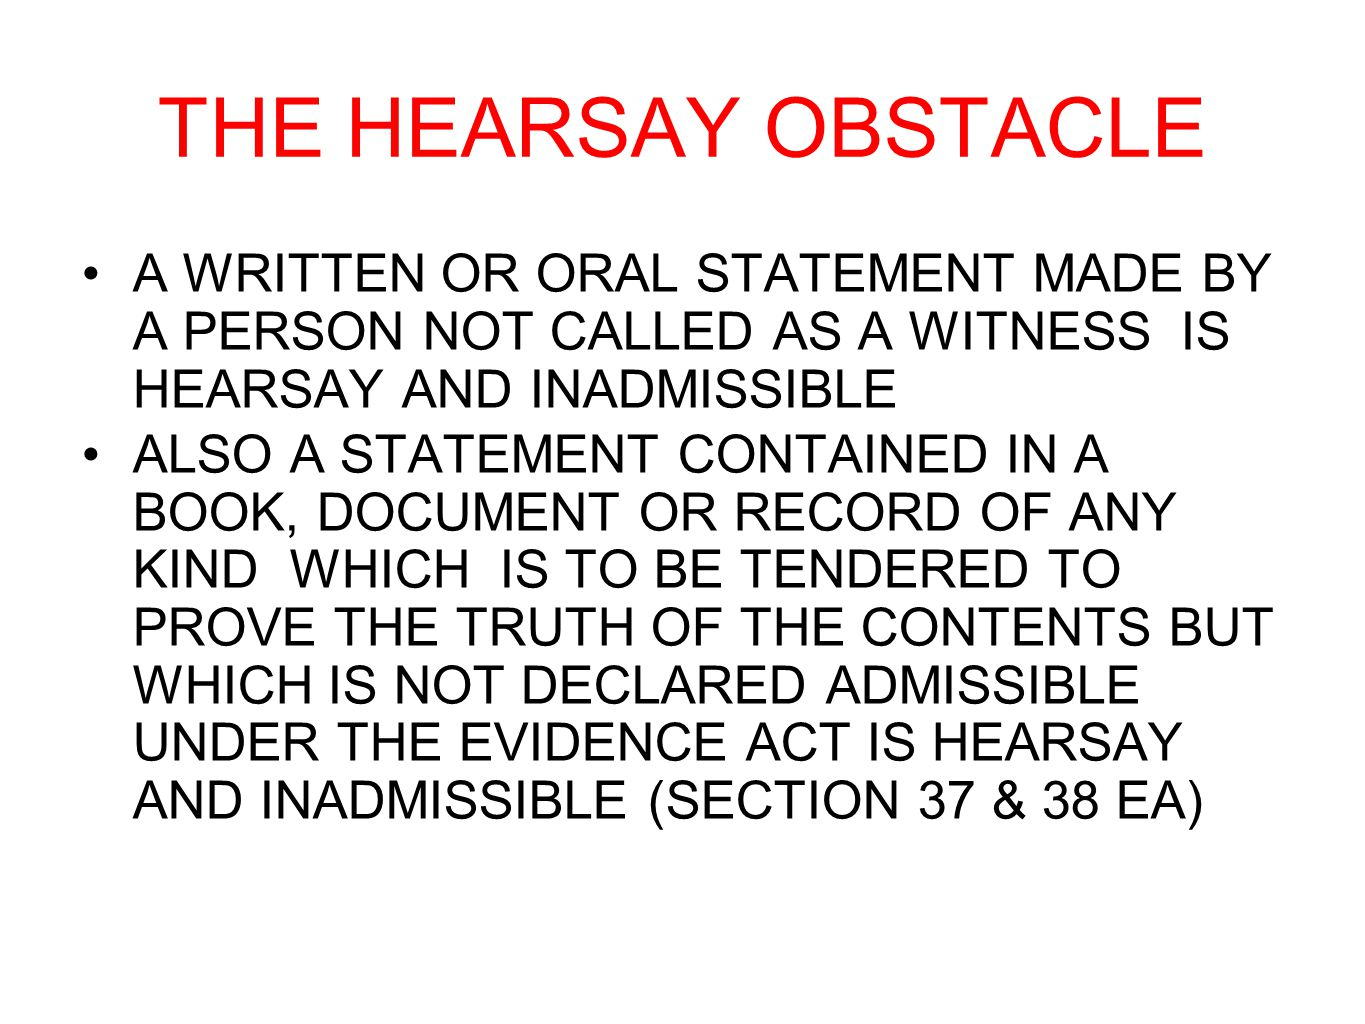 THE HEARSAY OBSTACLE A WRITTEN OR ORAL STATEMENT MADE BY A PERSON NOT CALLED AS A WITNESS IS HEARSAY AND INADMISSIBLE.